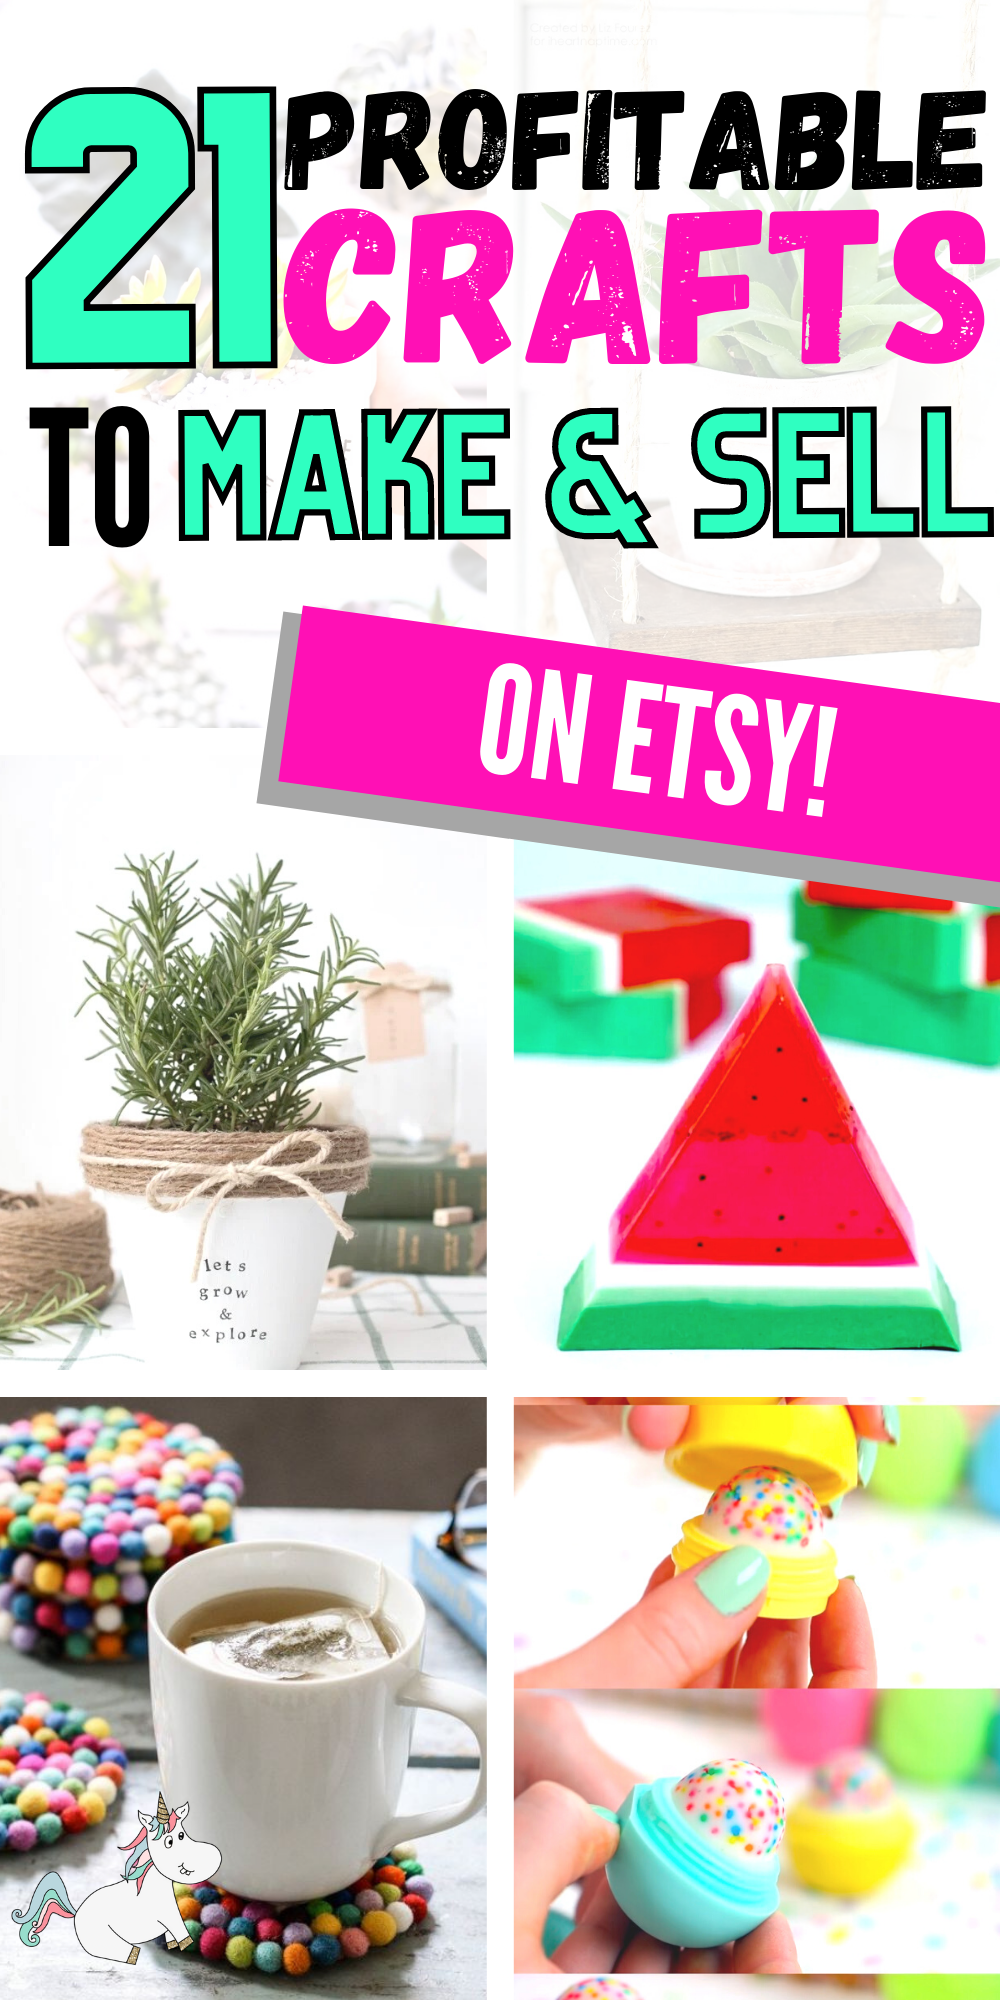 Best Crafts To Make And Sell, Updated Every Month So You Can Stay On Top Of The Latest Trends